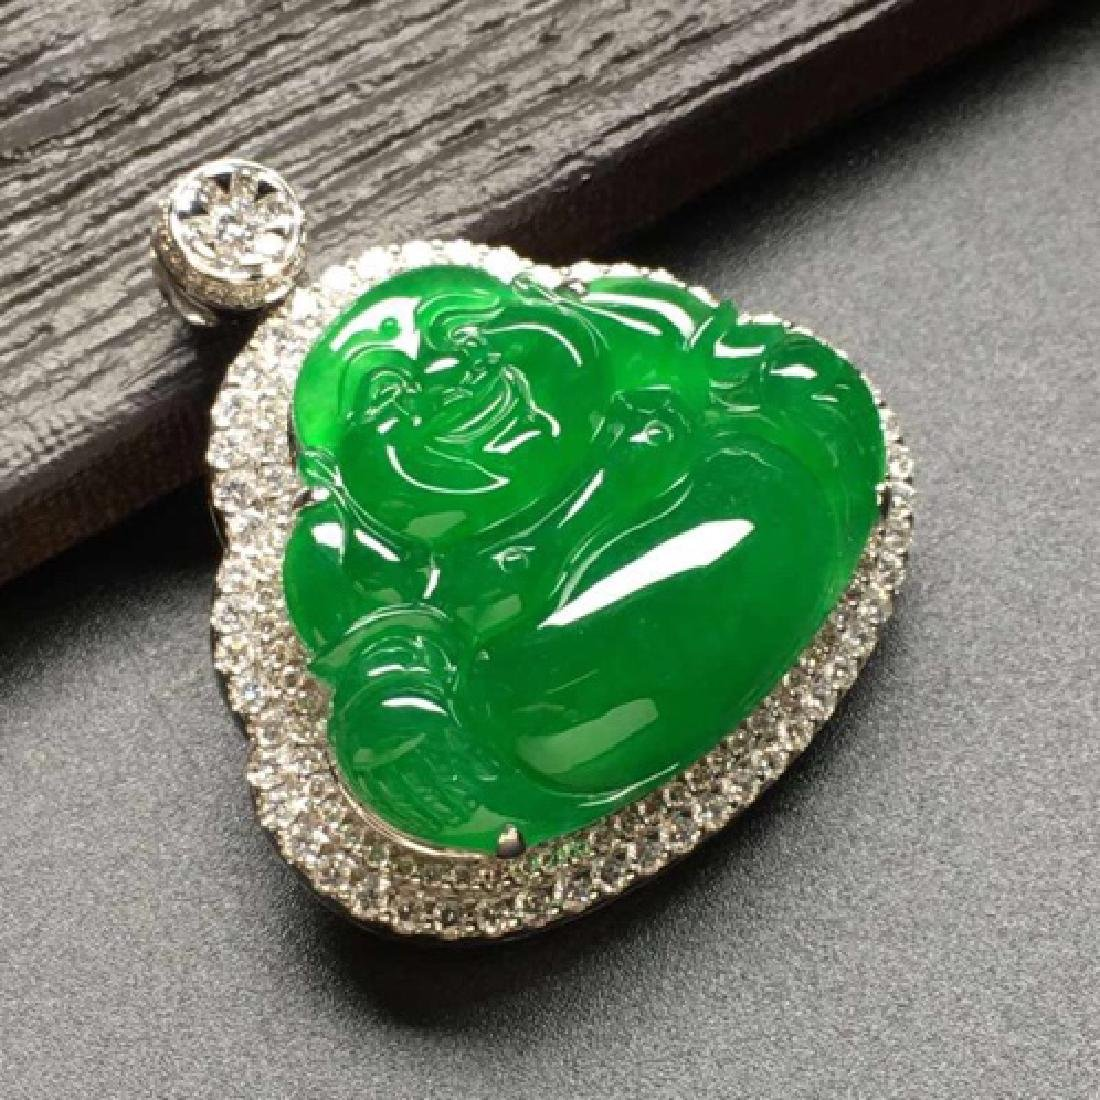 LAUGHING BUDDHA DESIGN NATURAL ICY JADEITE PENDANT With